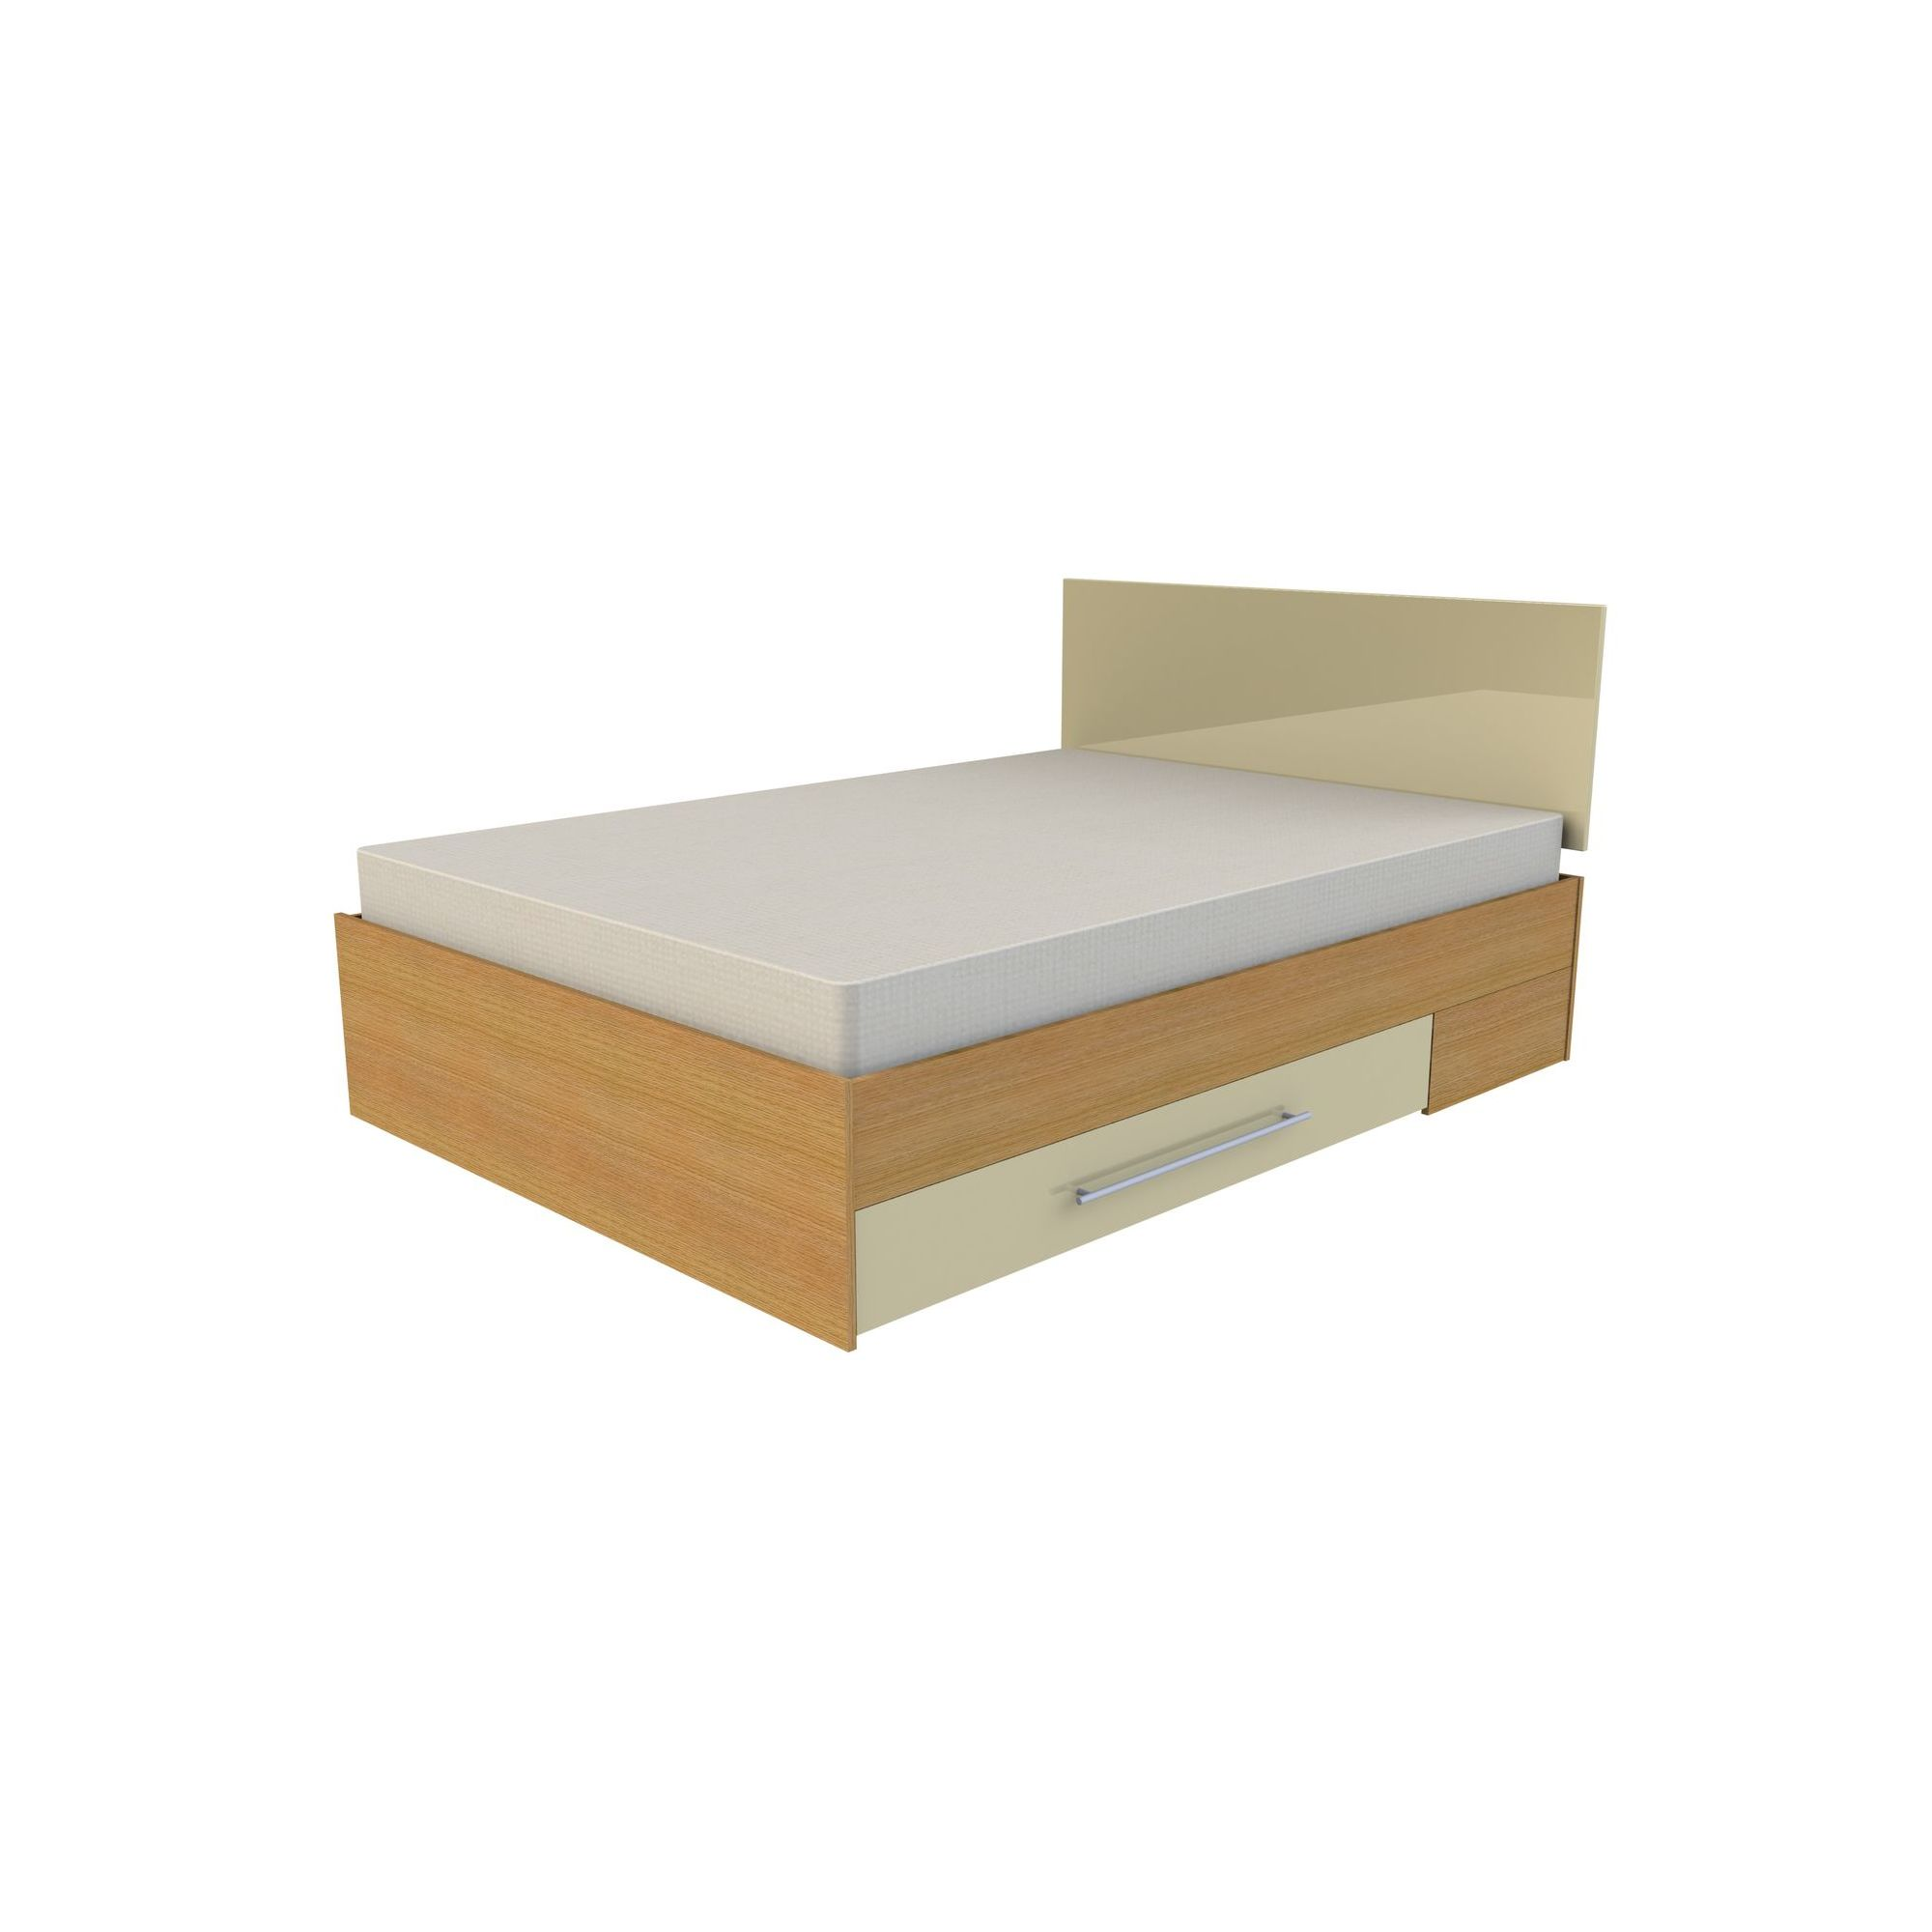 Ashcraft Modular Storage Double Bed - Oak With Cream Gloss at Tesco Direct